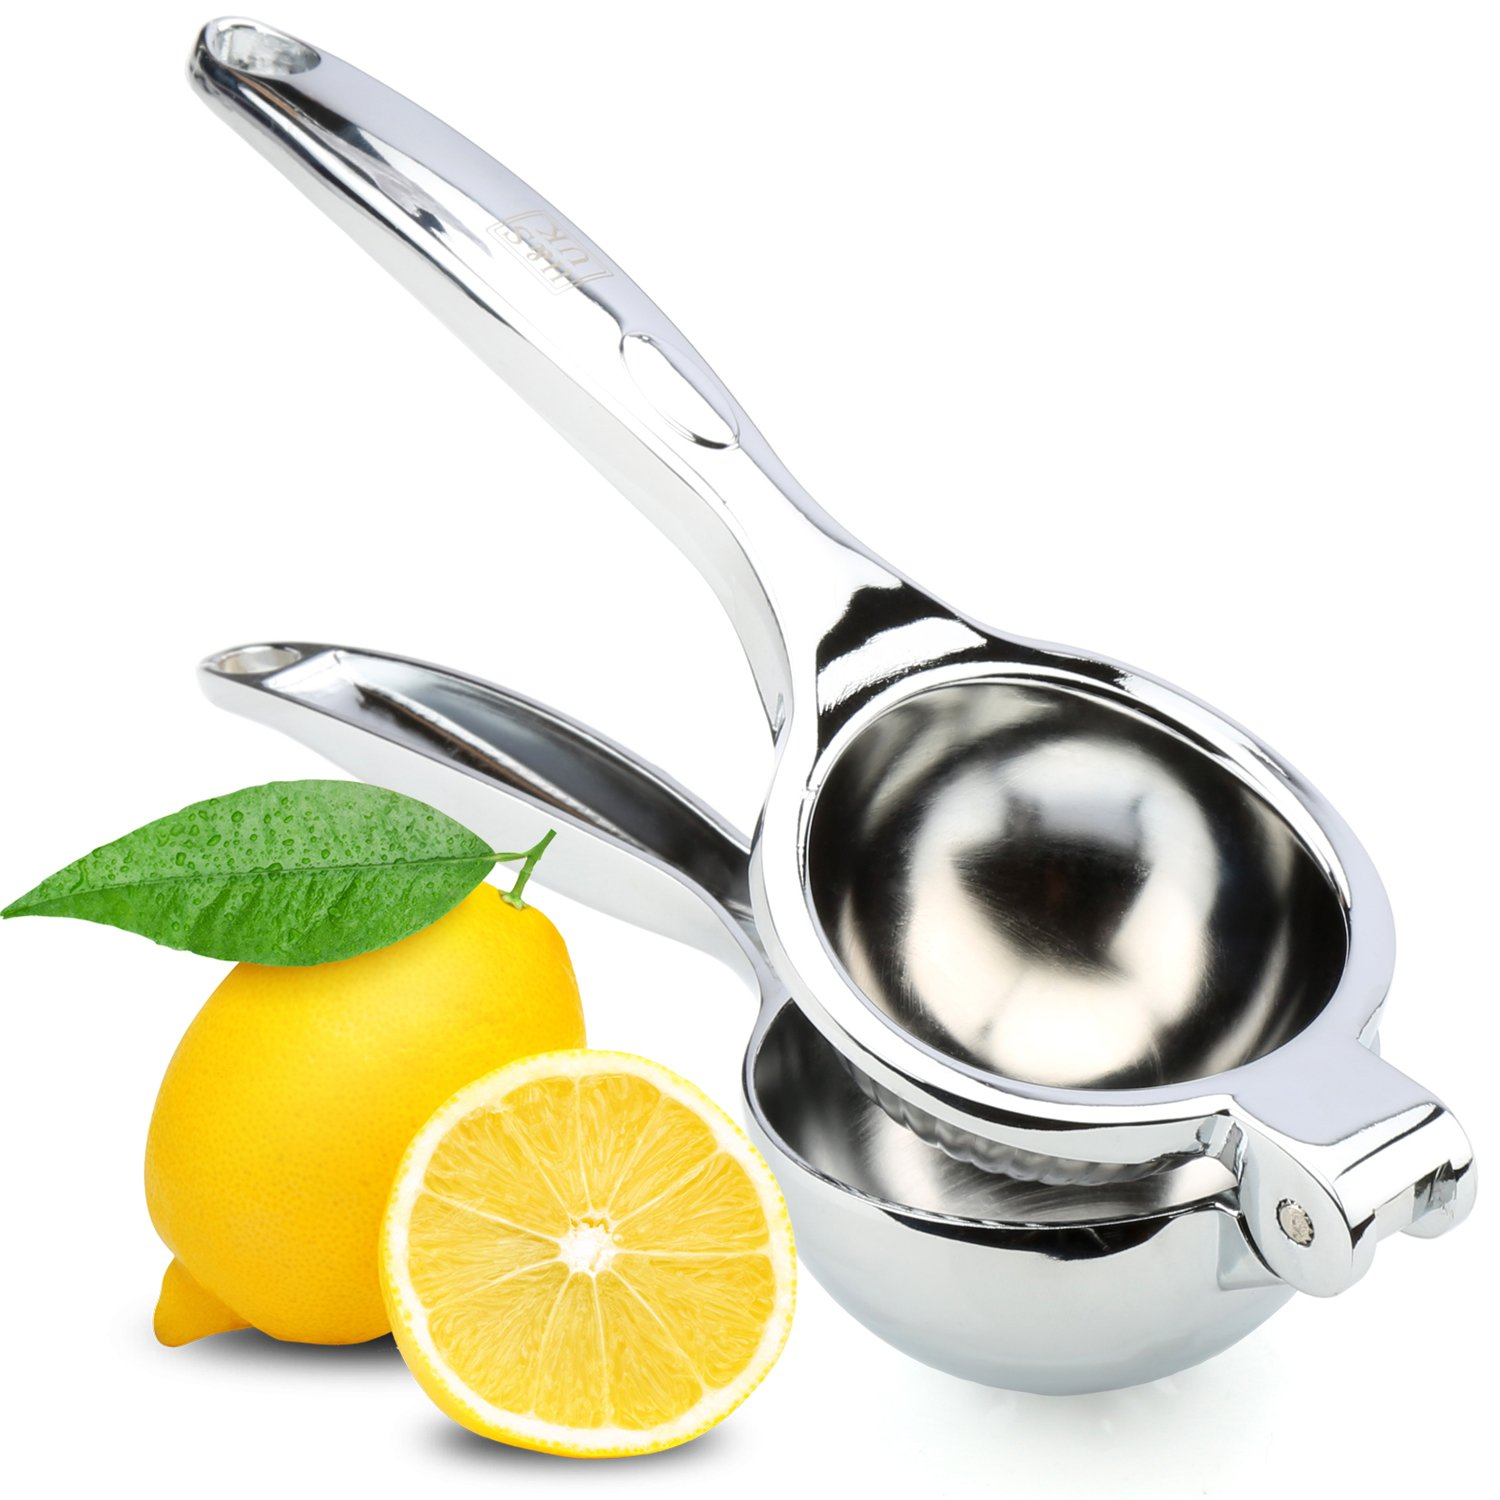 H&S Manual Lemon Squeezer - Heavy Duty - Juice Extractor Single Press Hand Lime Citrus Fruit Juicer H and S Alliance UK Ltd